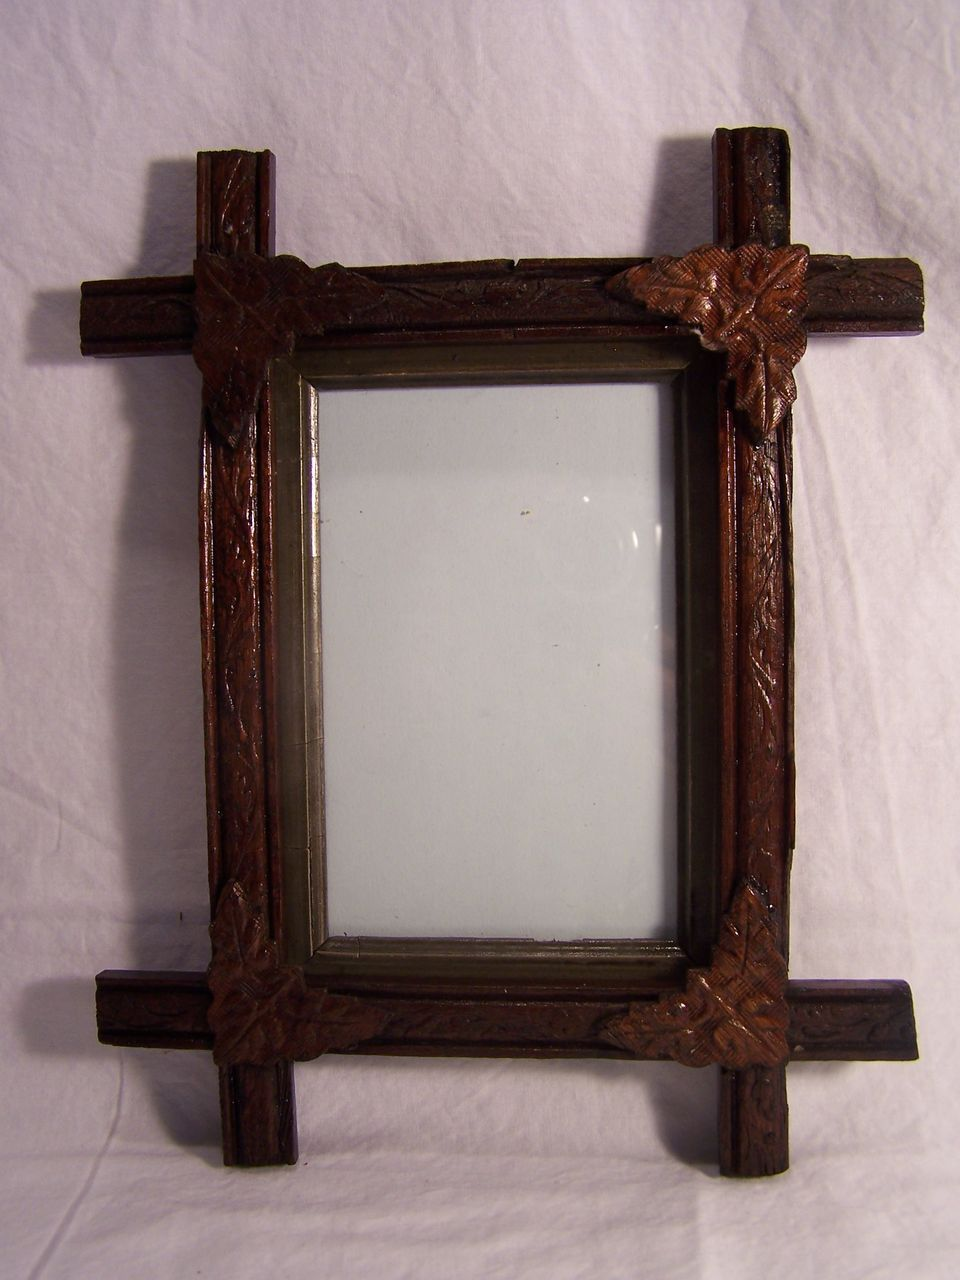 this adirondack eastlake rustic tramp art picture frame has beautifully carved leaves on the corners